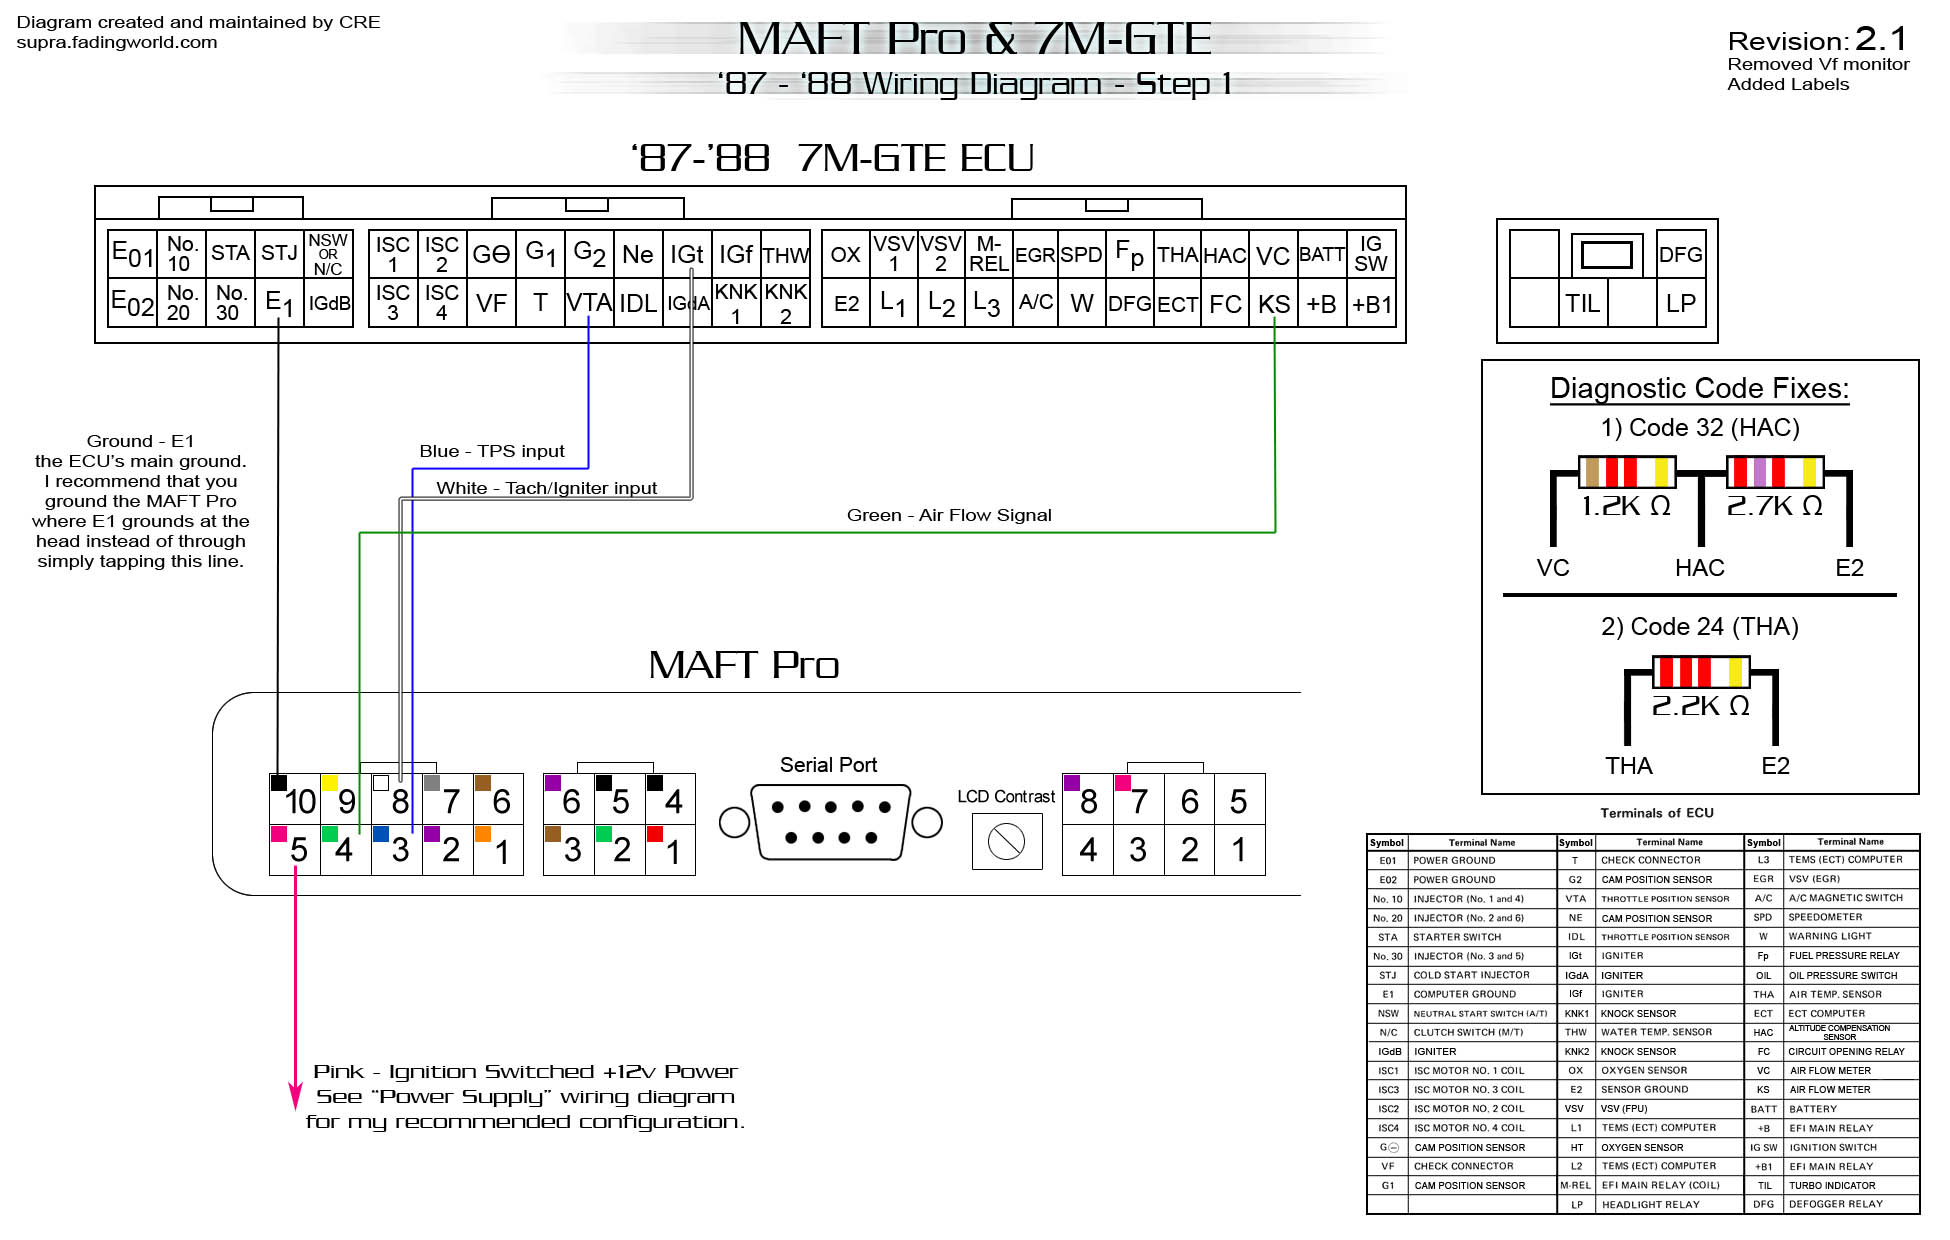 87 88 Wiring Diagram Rev. 2.1 (CRE) trouble wiring maft pro in 87 mk3 full throttle speed tech support mk3 supra wiring diagram at soozxer.org